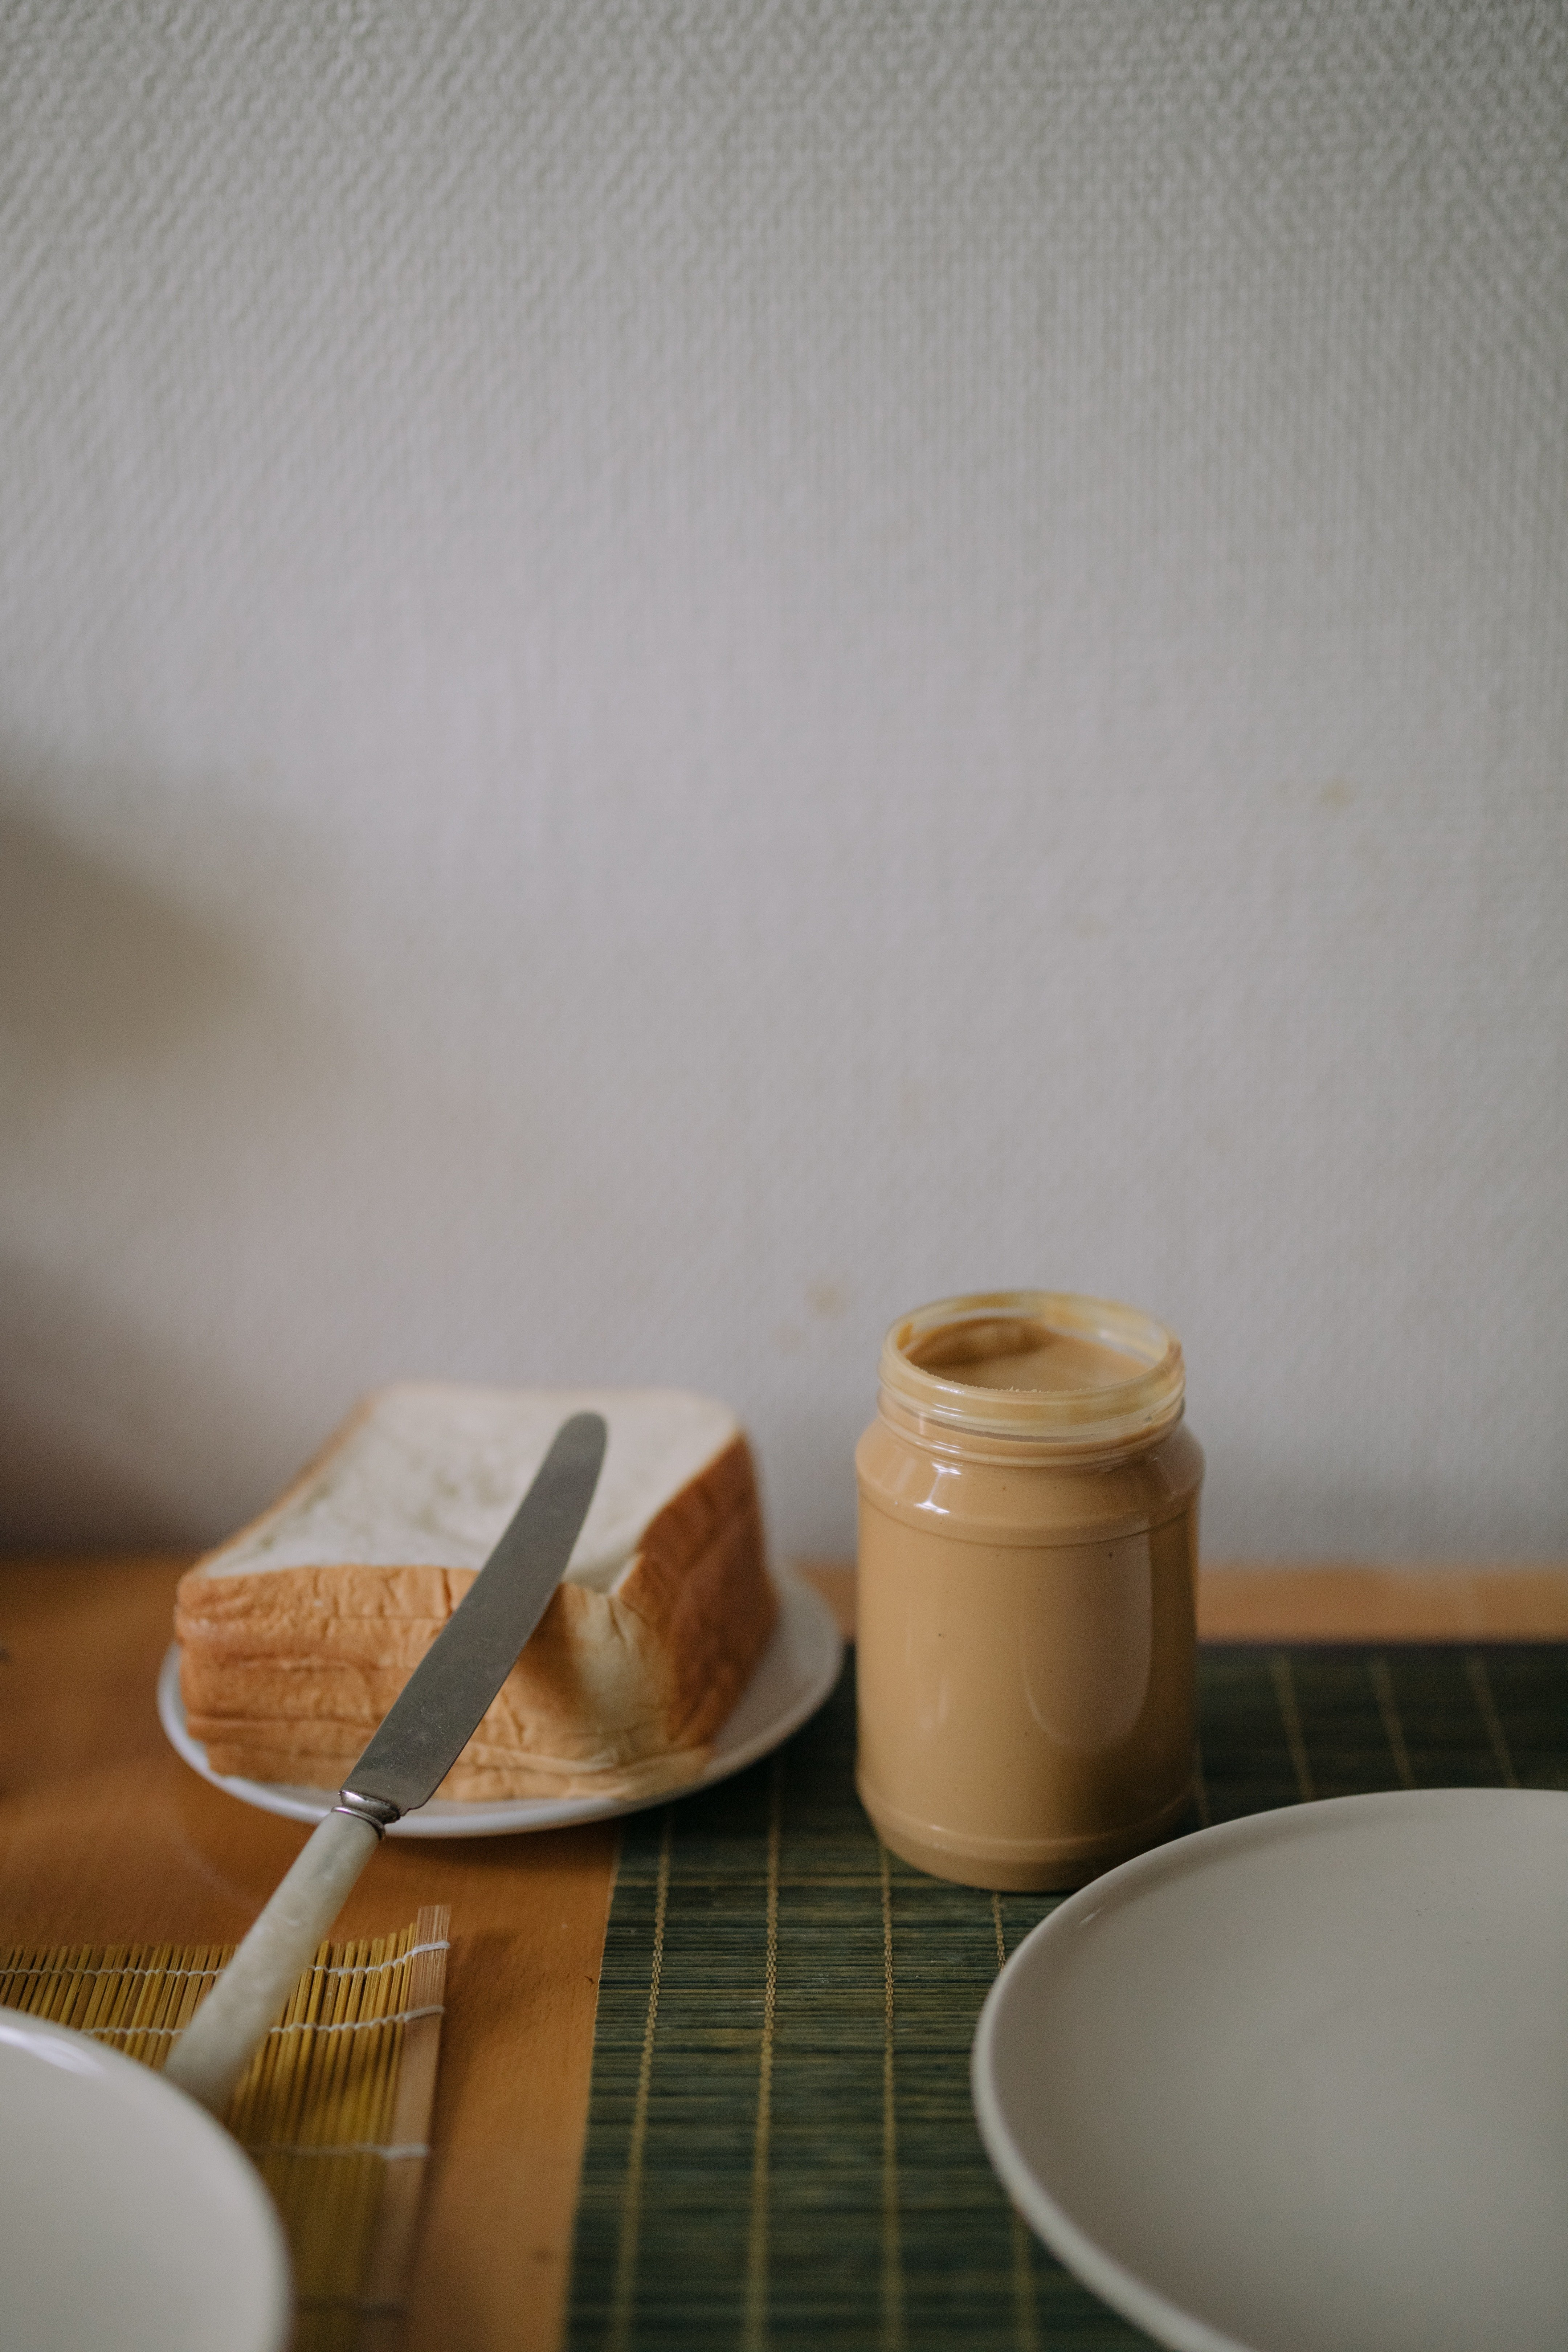 The vision of that peanut butter toast really struck me for some reason   Source: Pexels